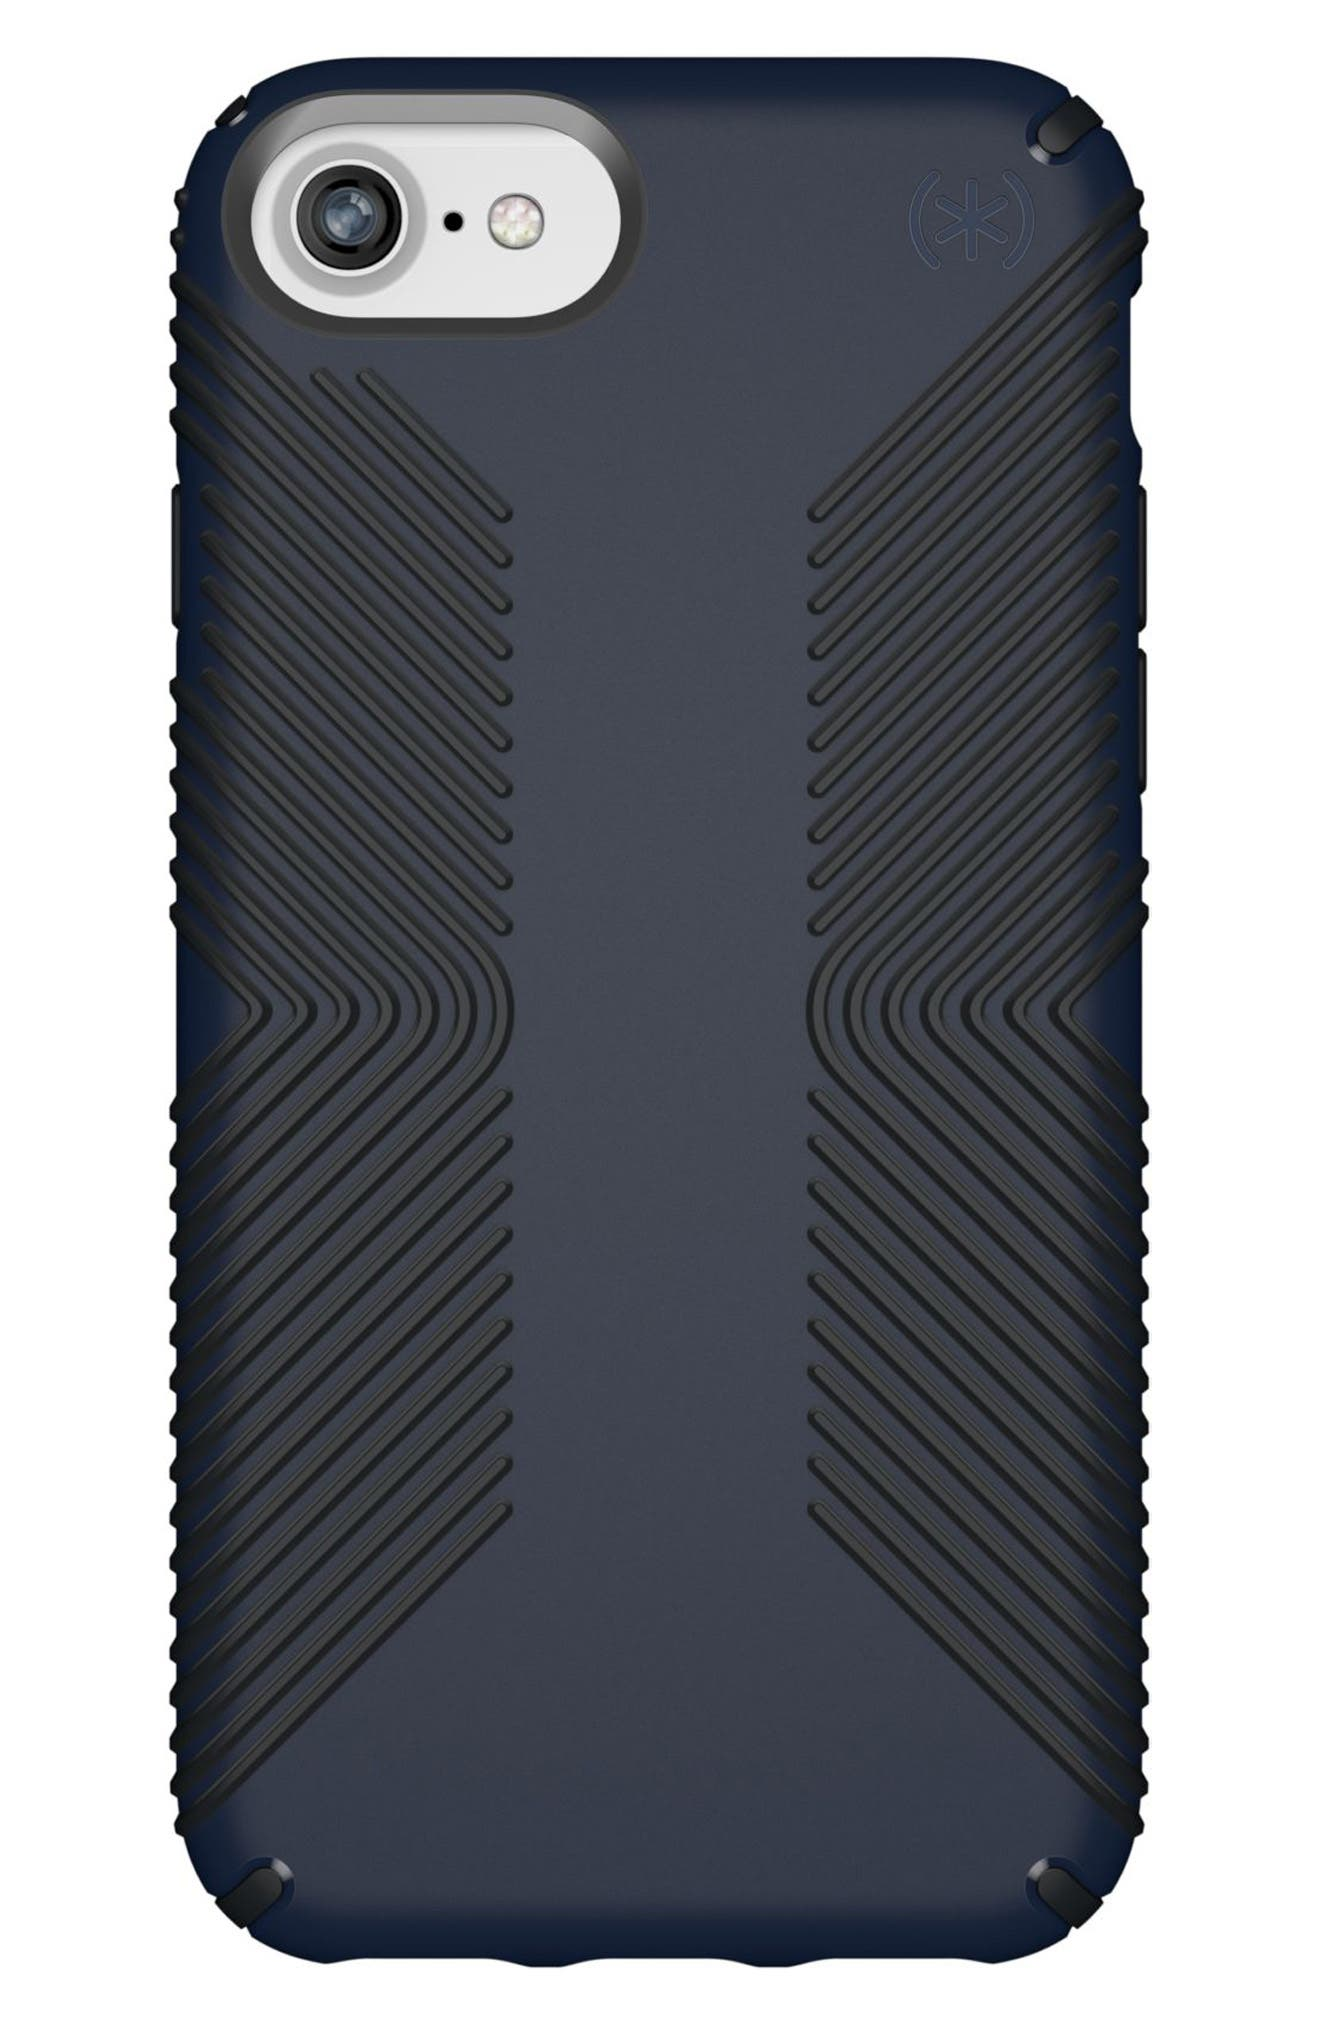 Grip iPhone 6/6s/7/8 Case,                         Main,                         color, Eclipse Blue/ Carbon Black